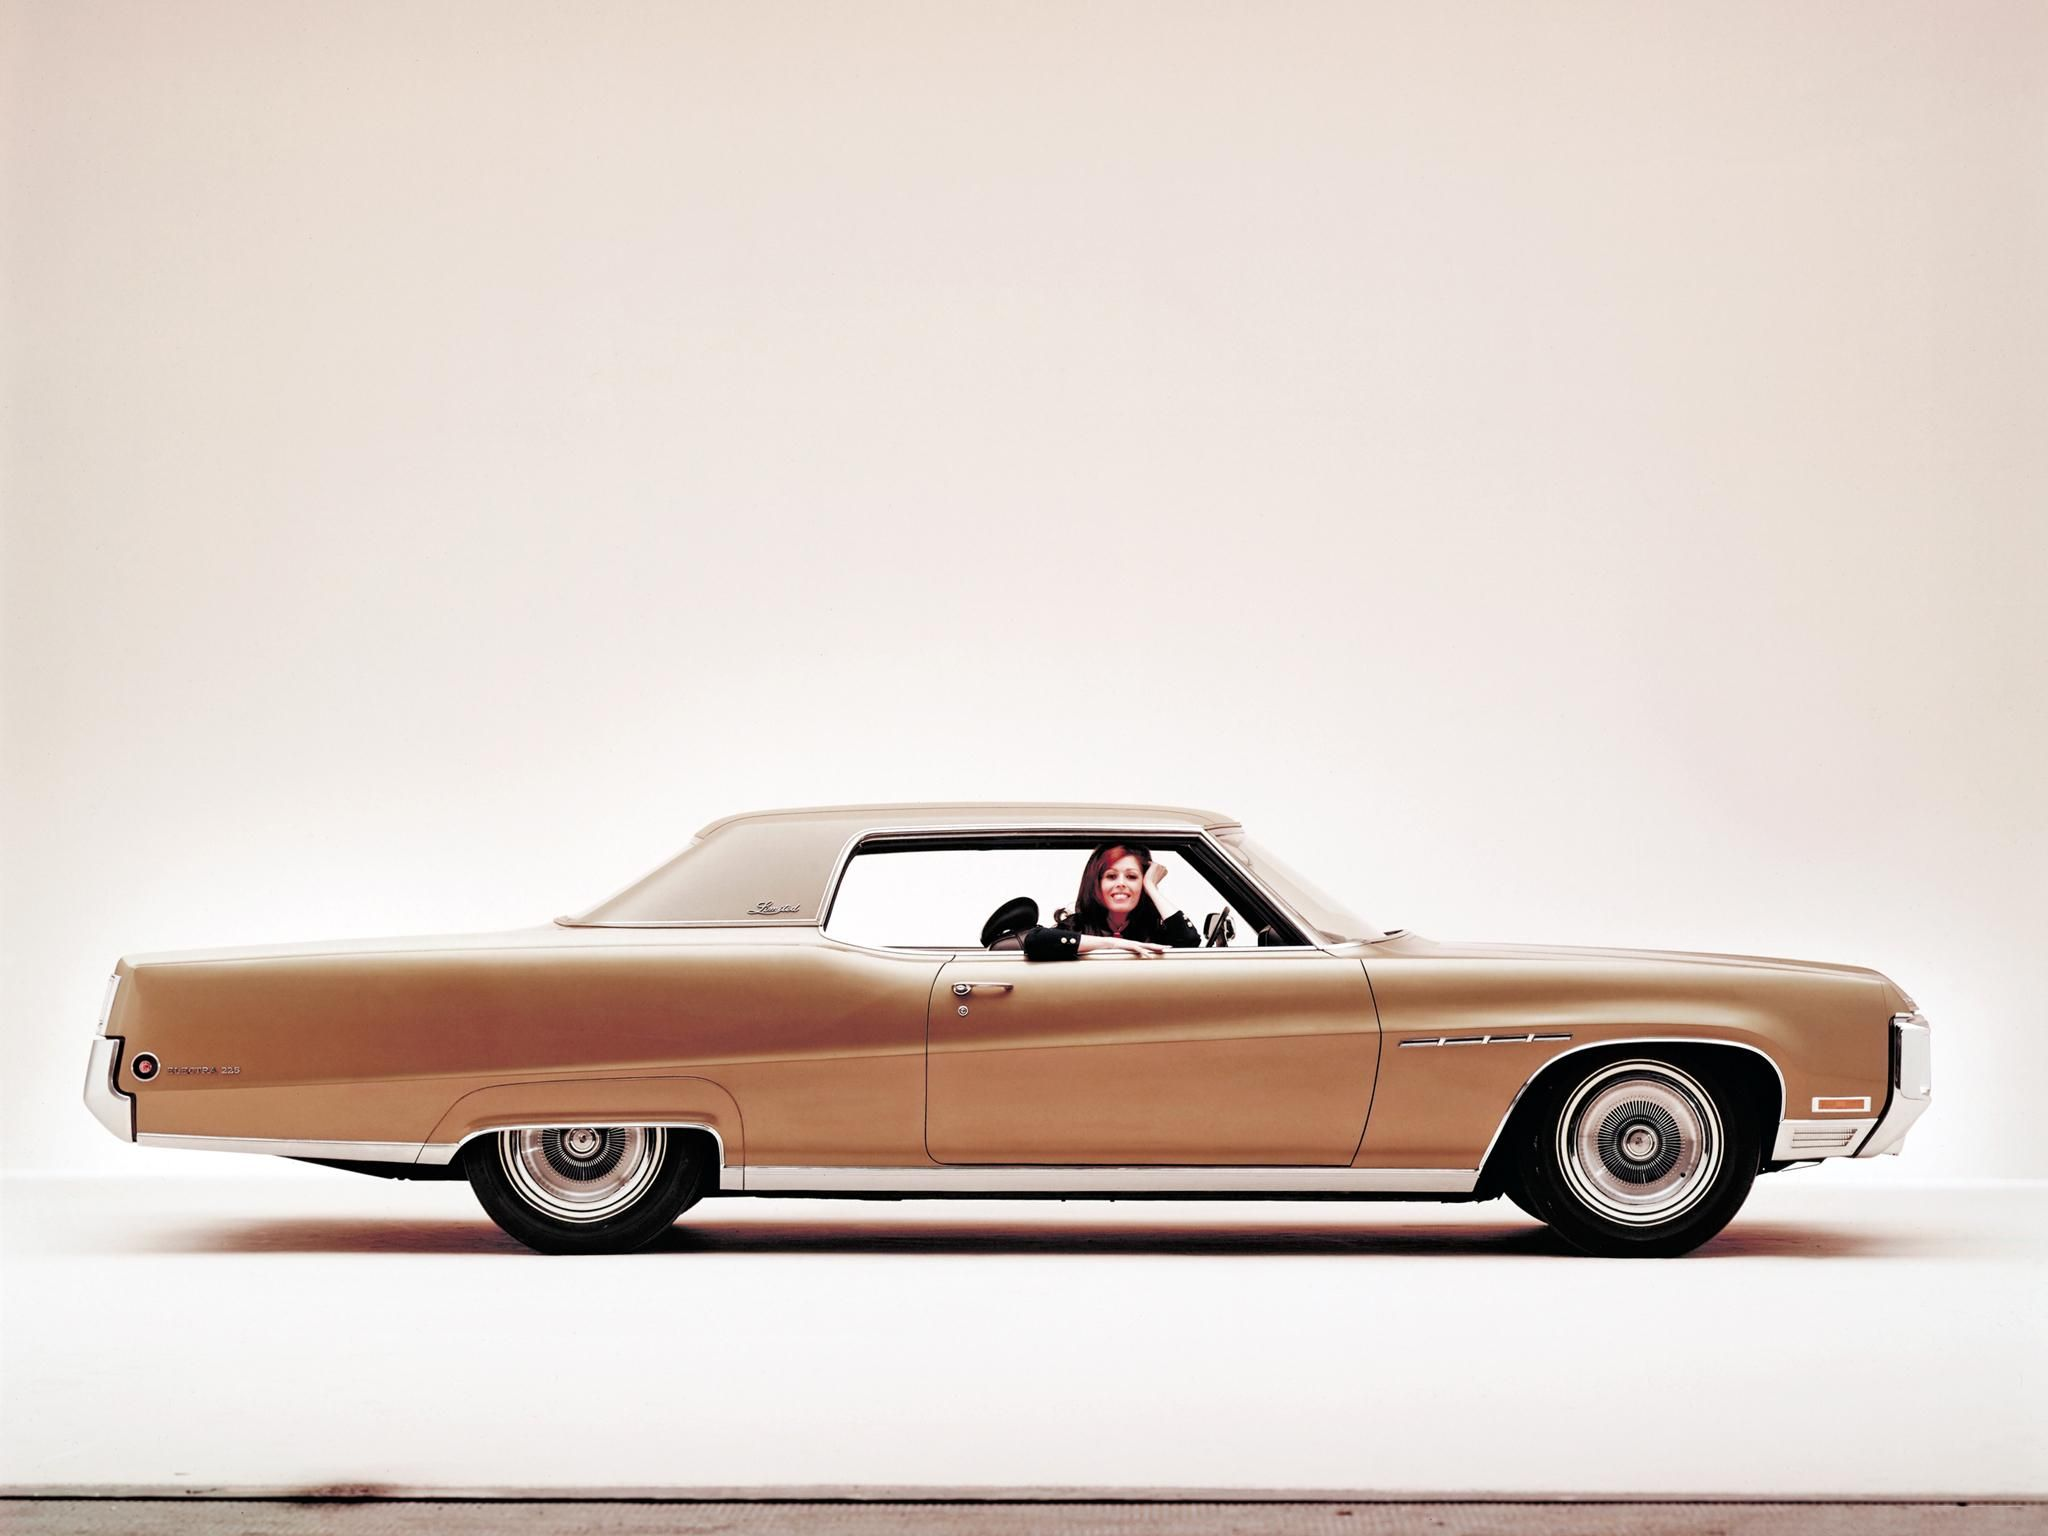 Buick Electra 225 Limited 1970